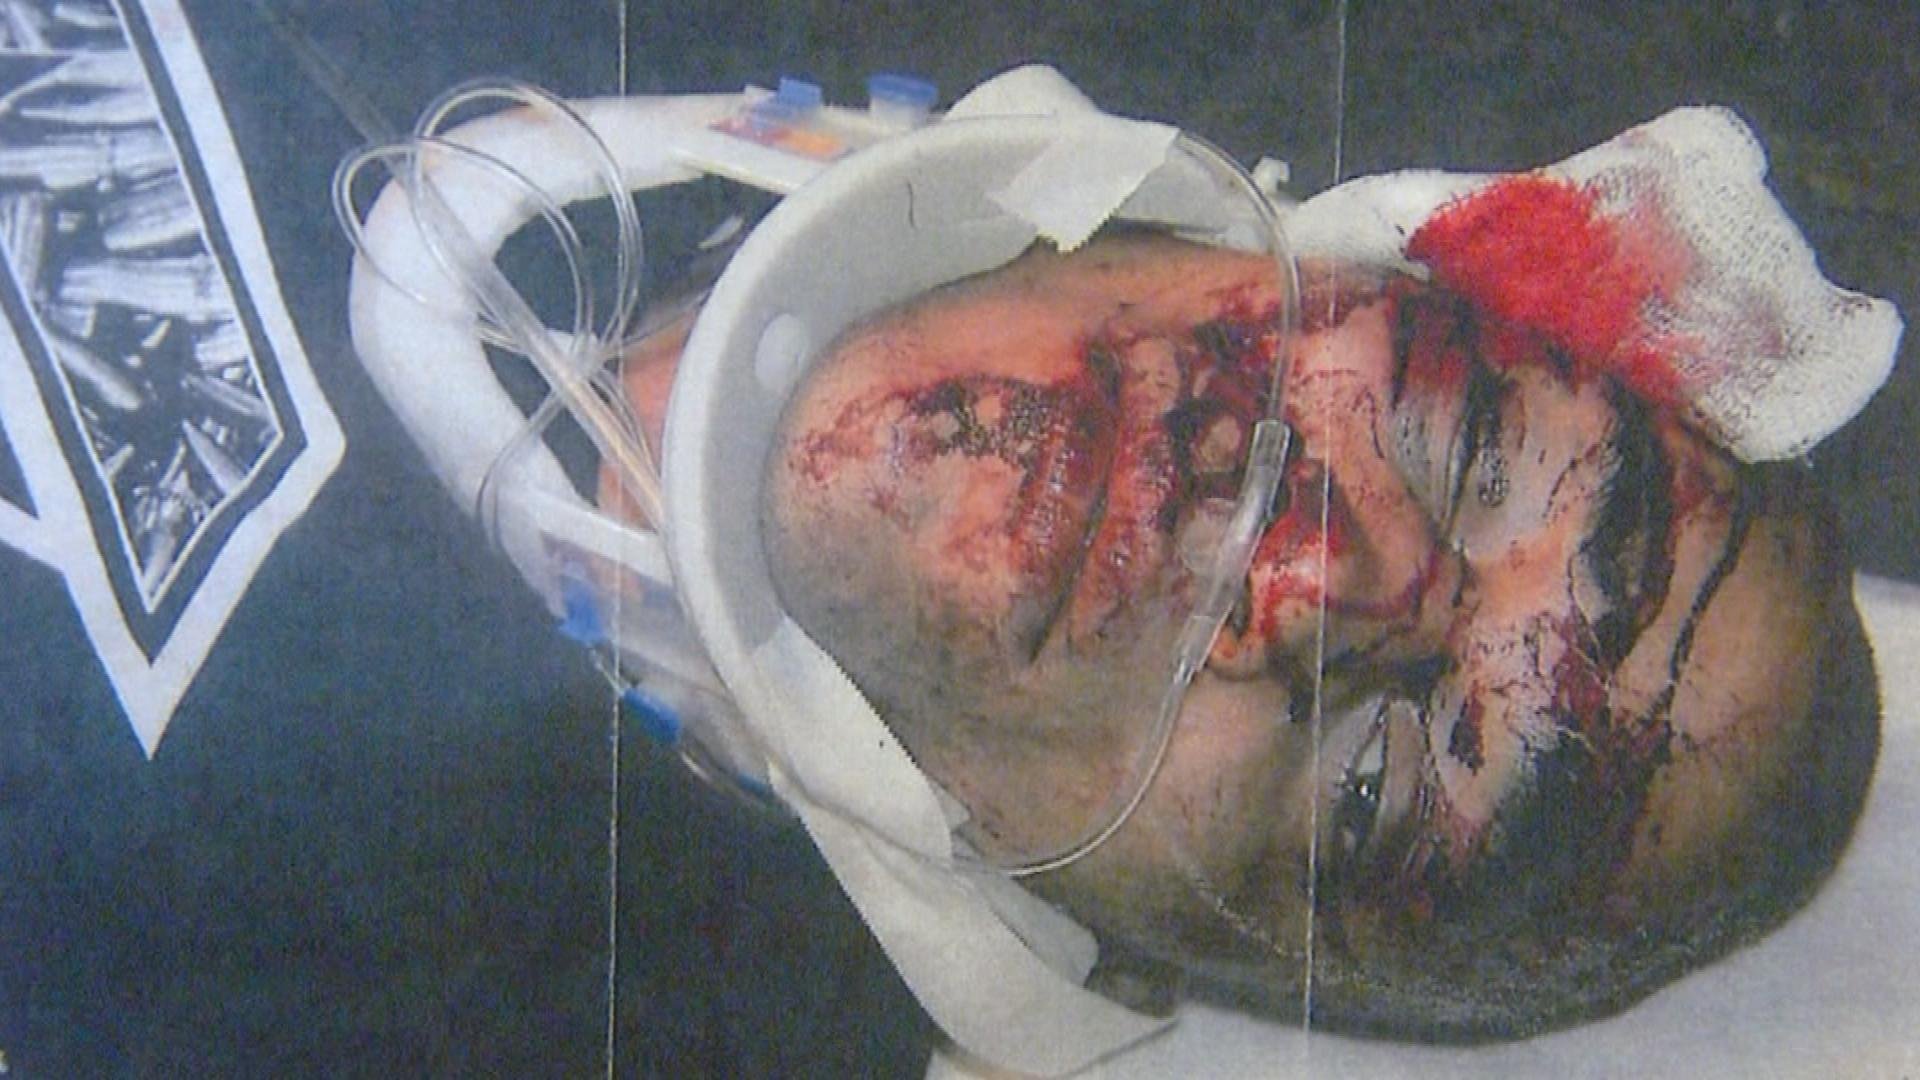 Photo of Alexander Landau's injuries (credit: CBS)